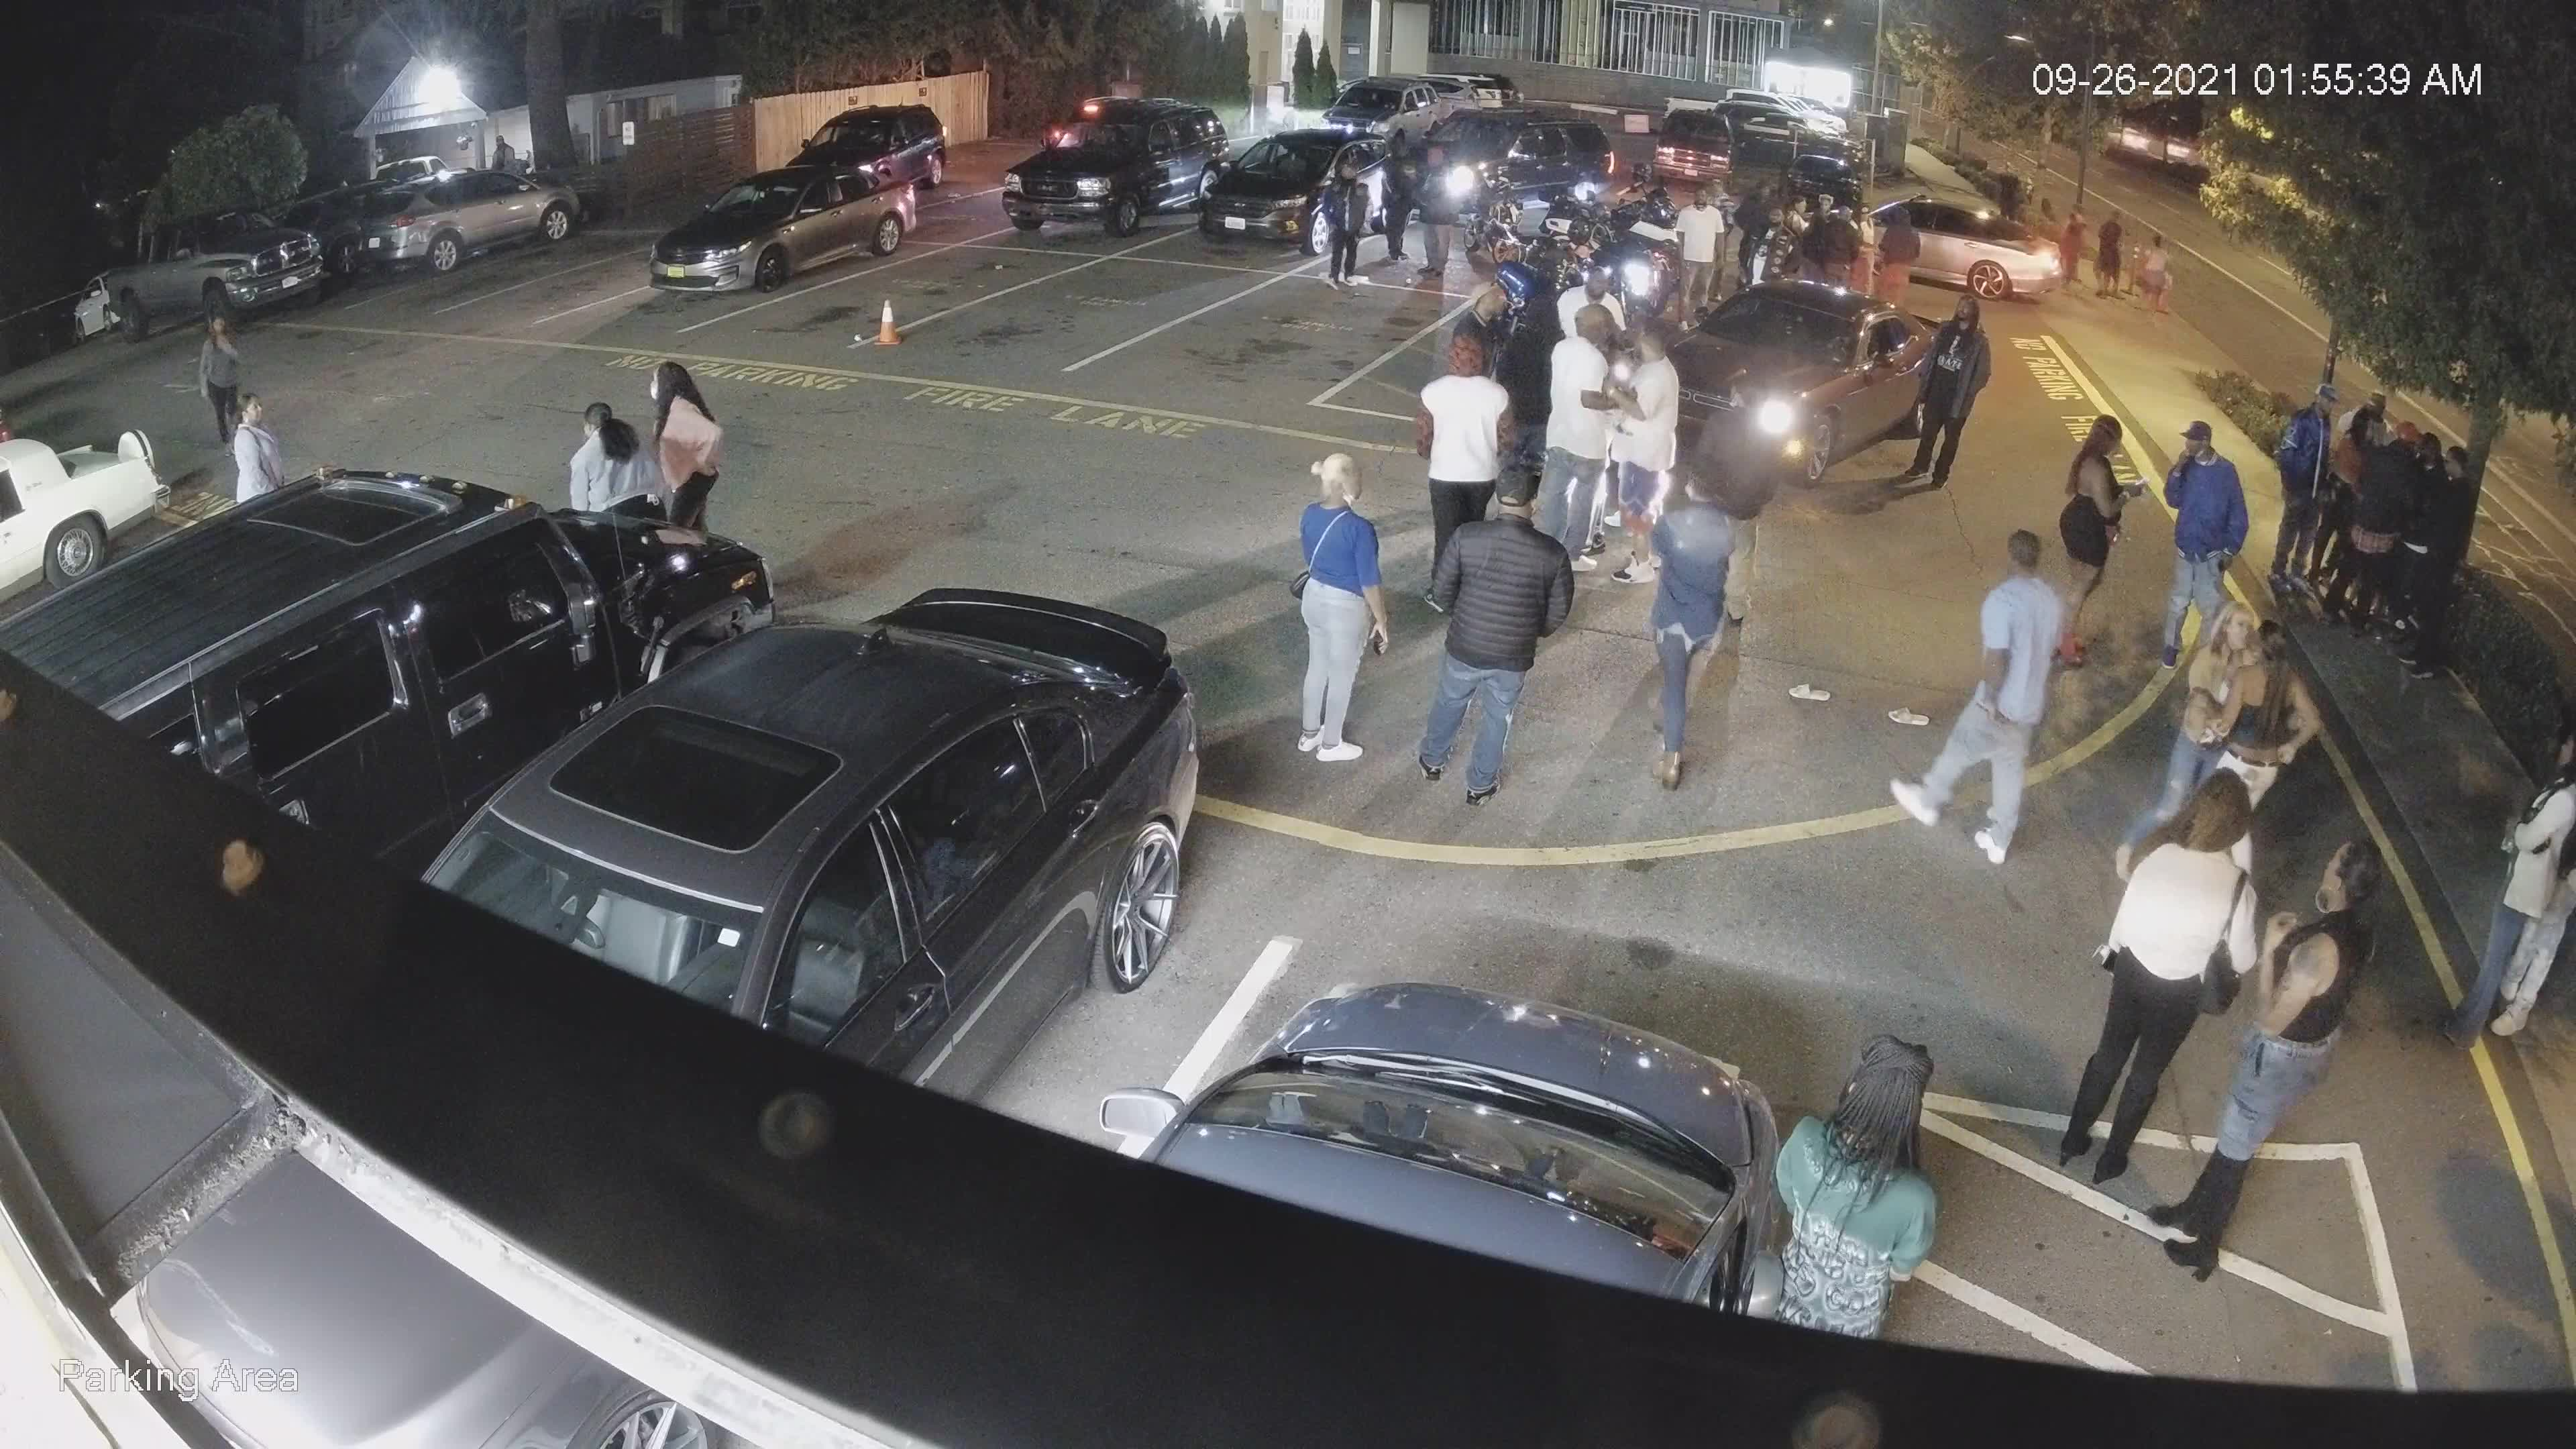 Des Moines police release surveillance footage of moments before deadly shooting